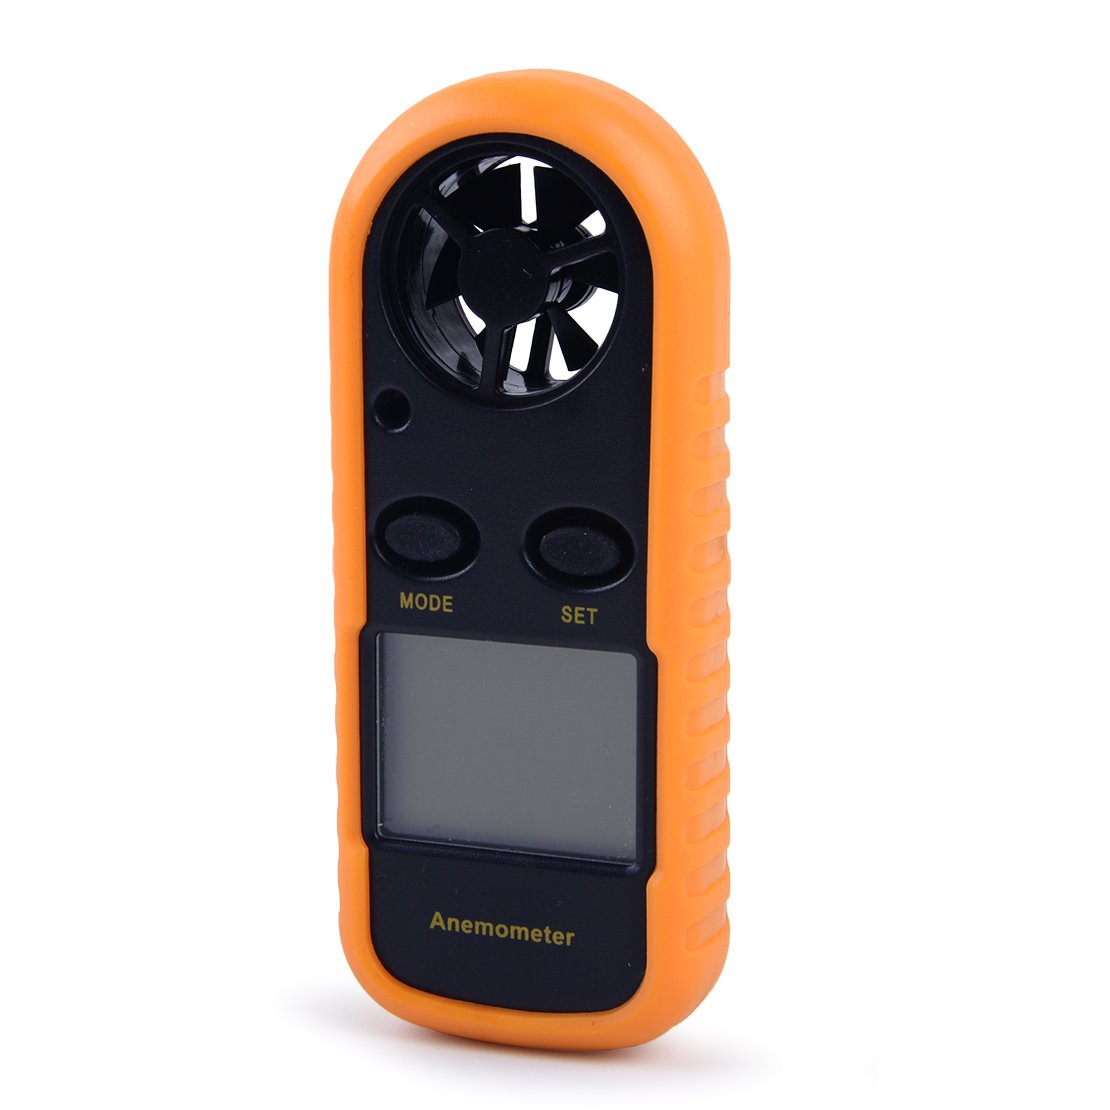 eastar Portable LCD Air Velocity Meter Digital Anemometer NTC Thermometer Wind Speed Gauge